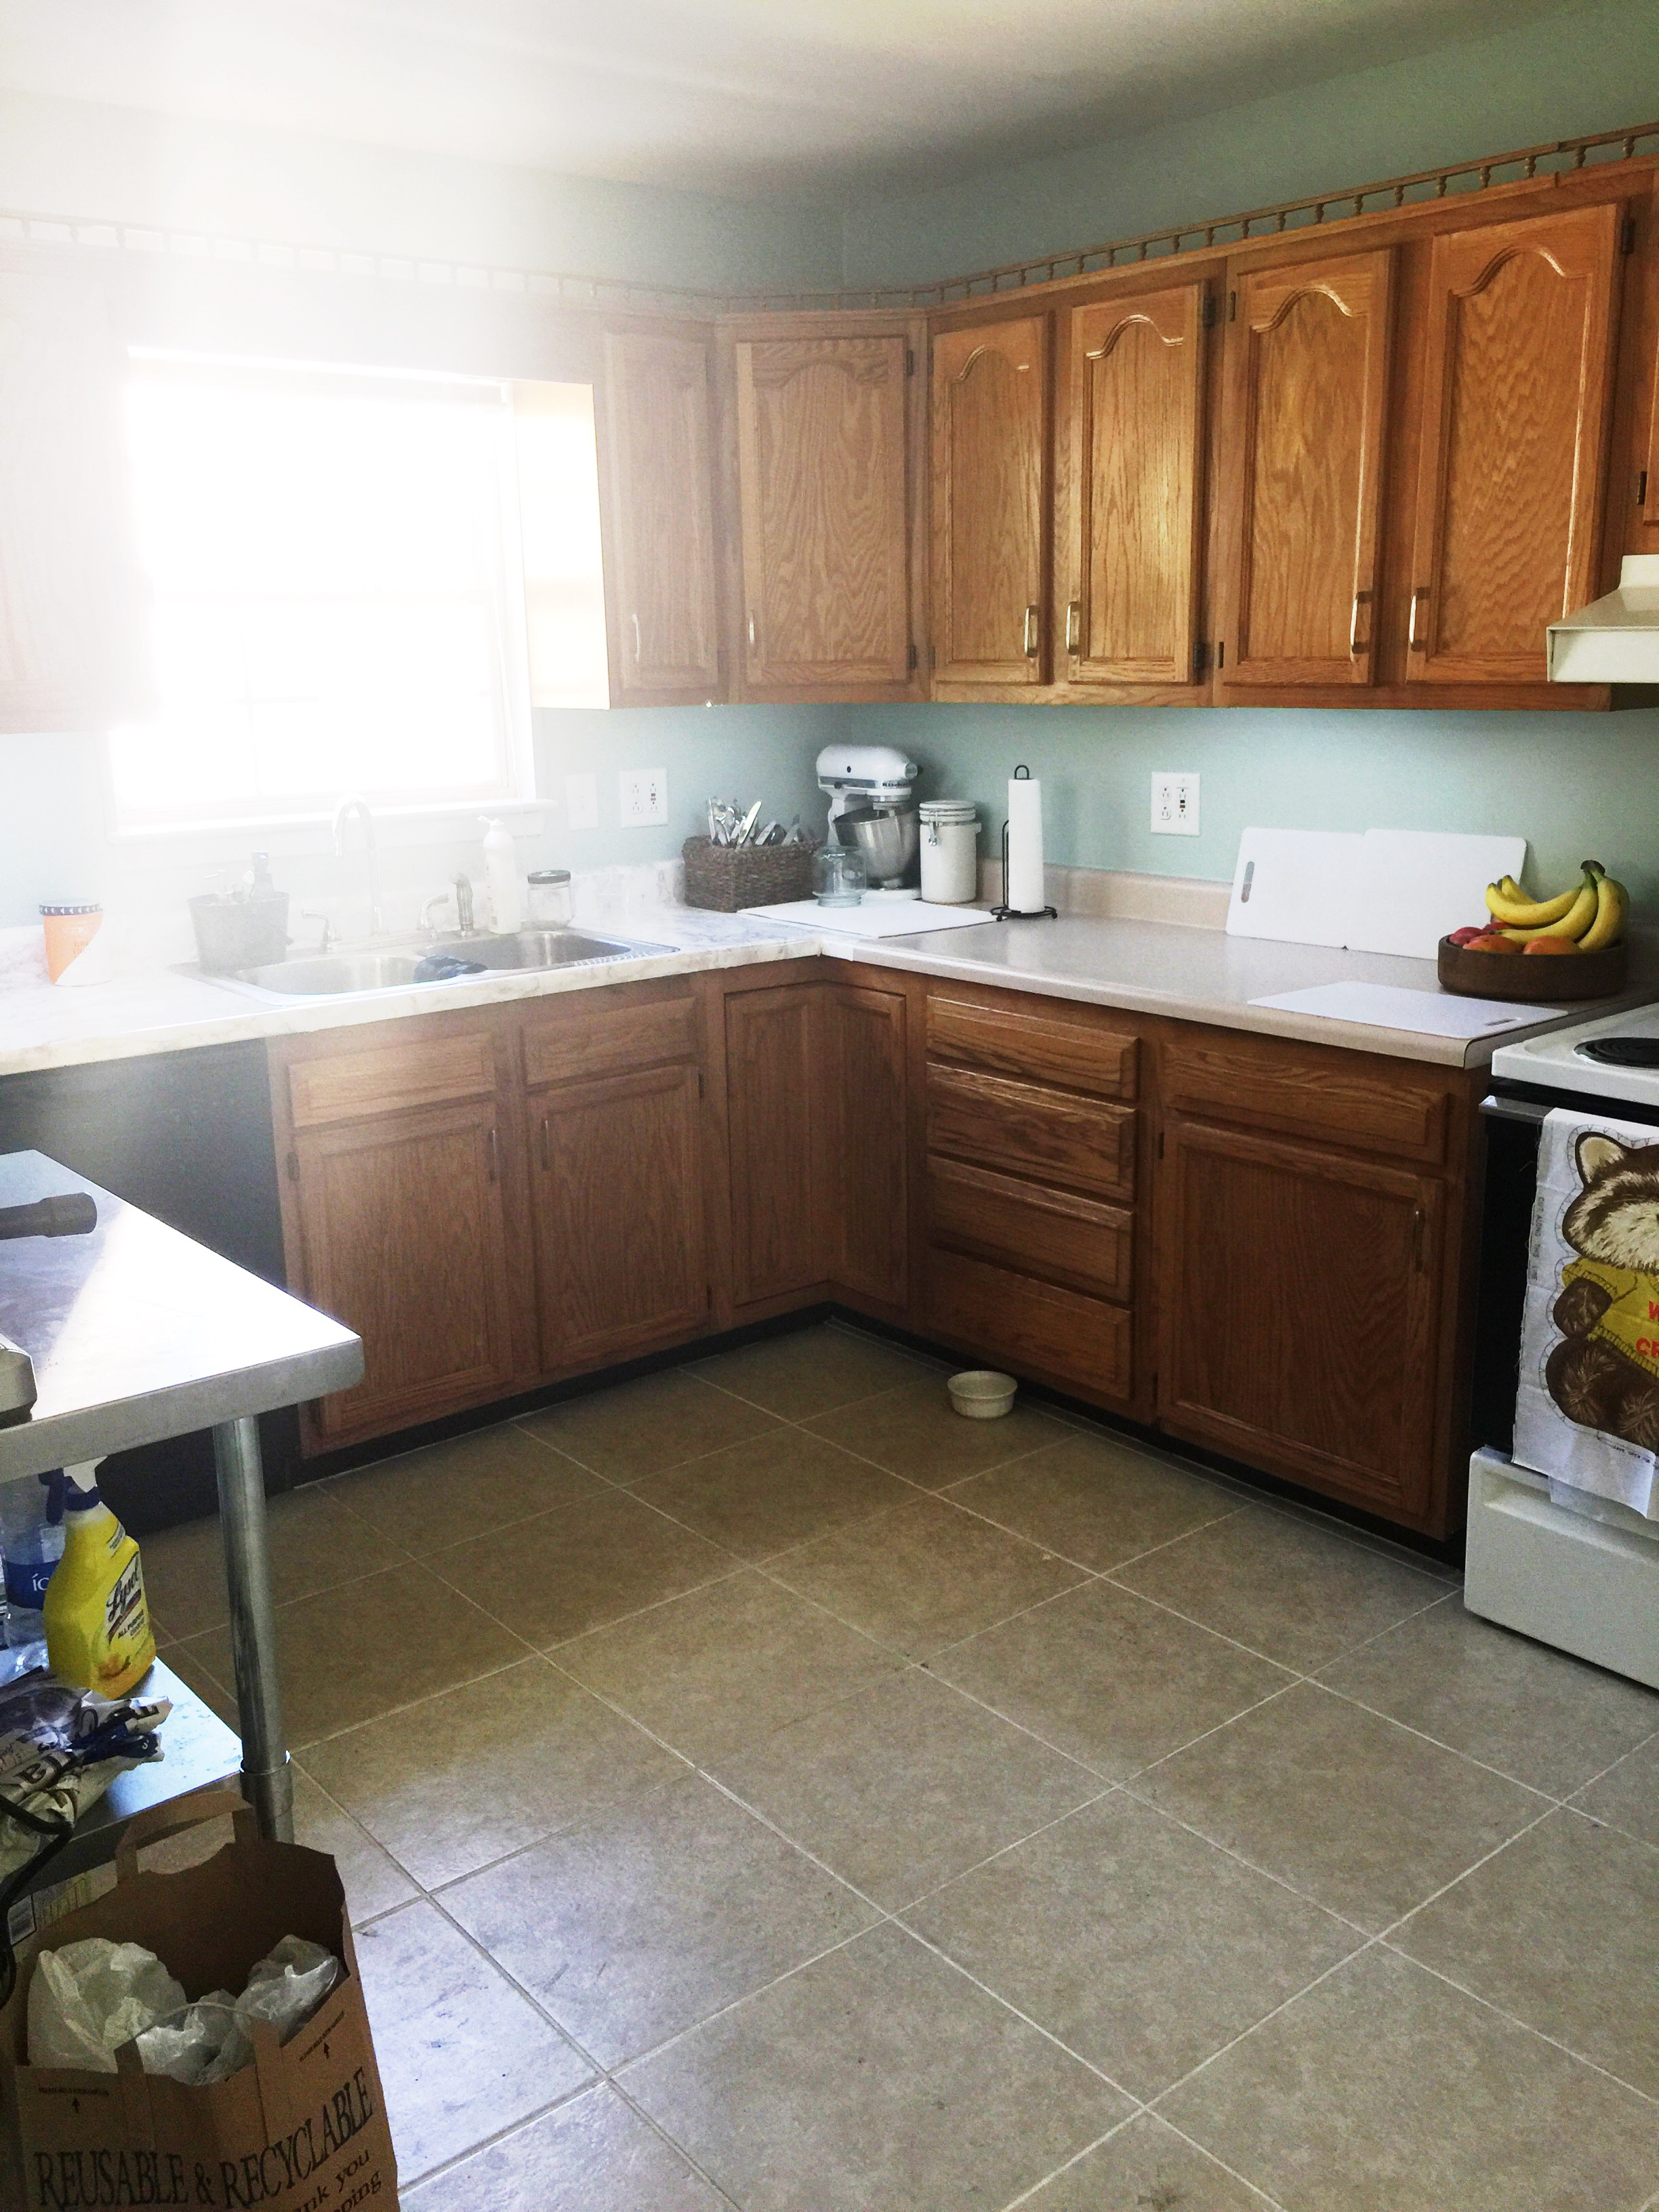 This kitchen is literally my biggest problem. Can't paint the cabinets! I'm already using contact paper for the counters and am not interested in using it for the cabinets as well. I changed the hardware and it helped some. Any ideas?!